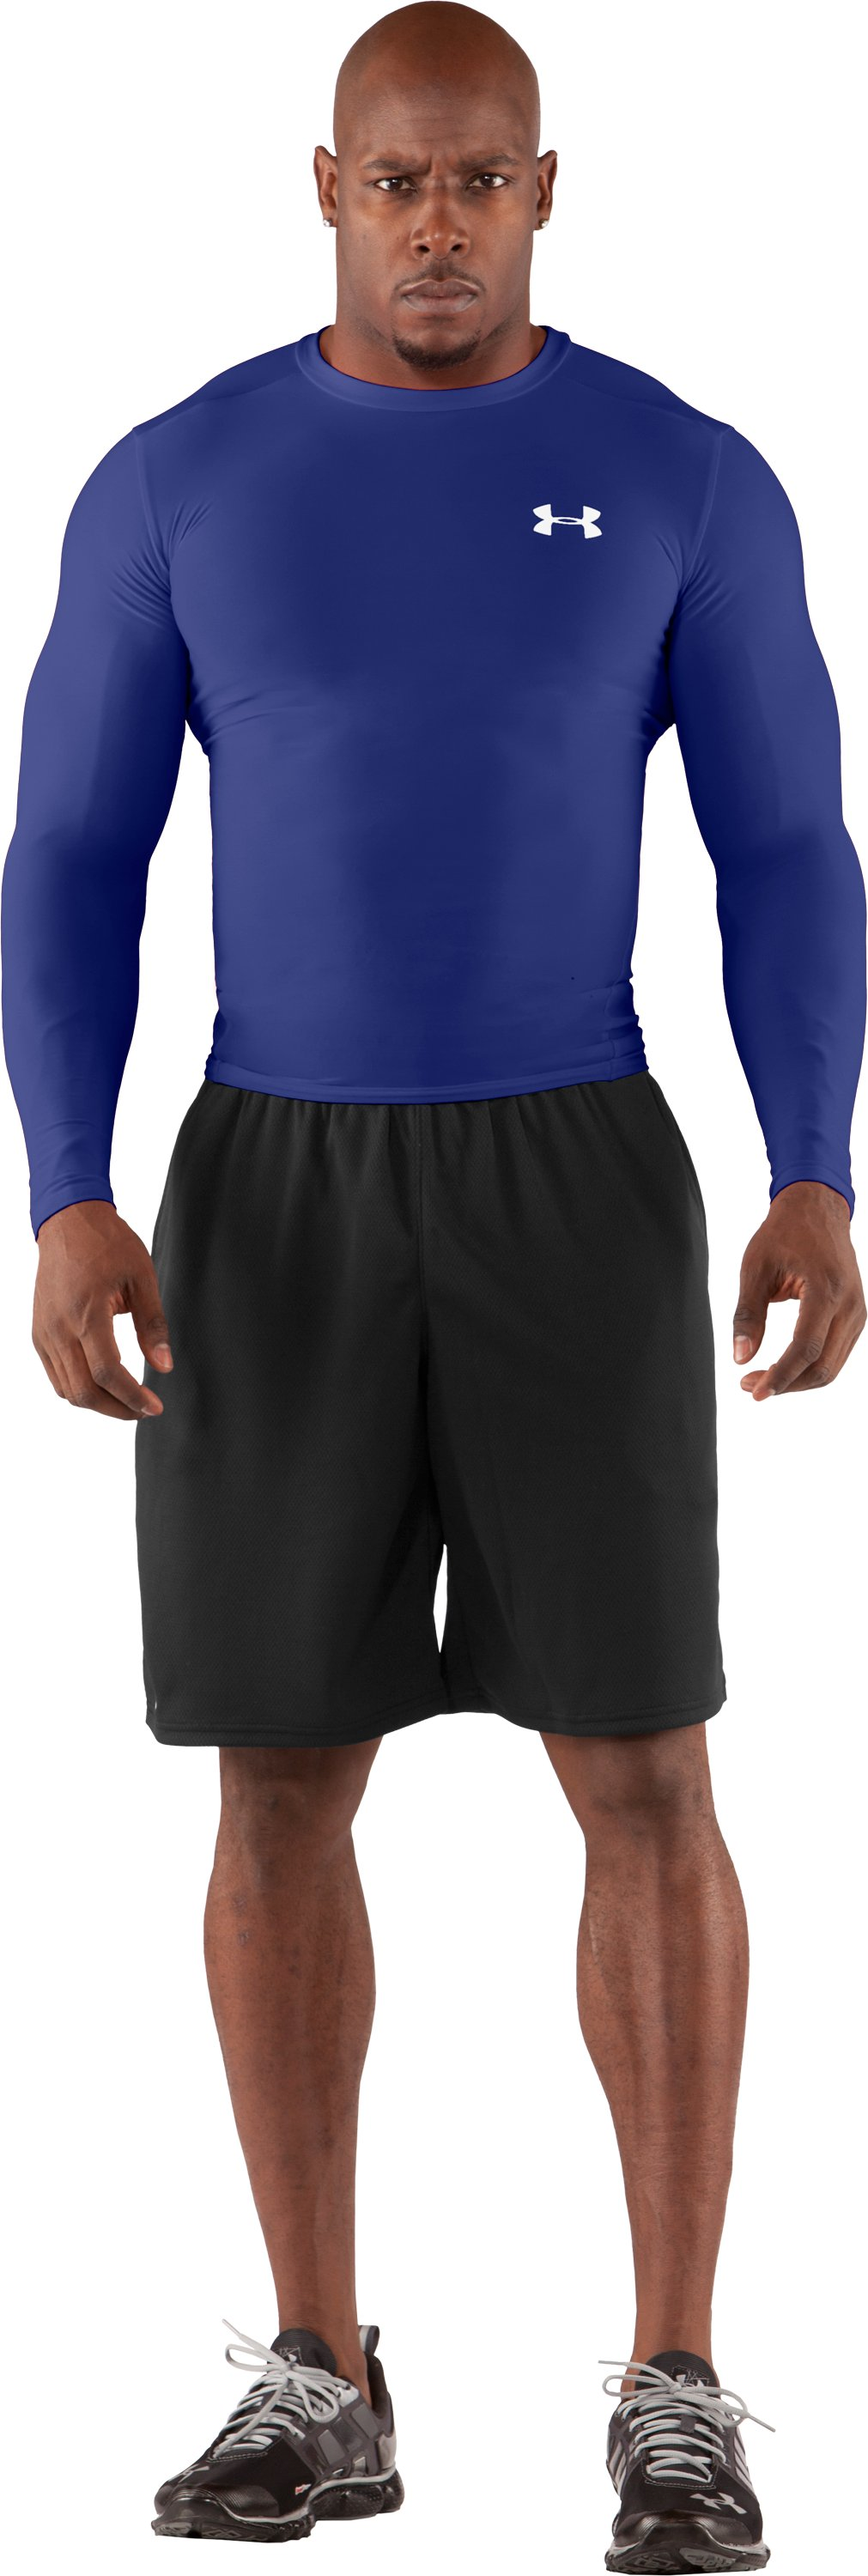 Men's HeatGear® Compression Long Sleeve T-Shirt, Royal